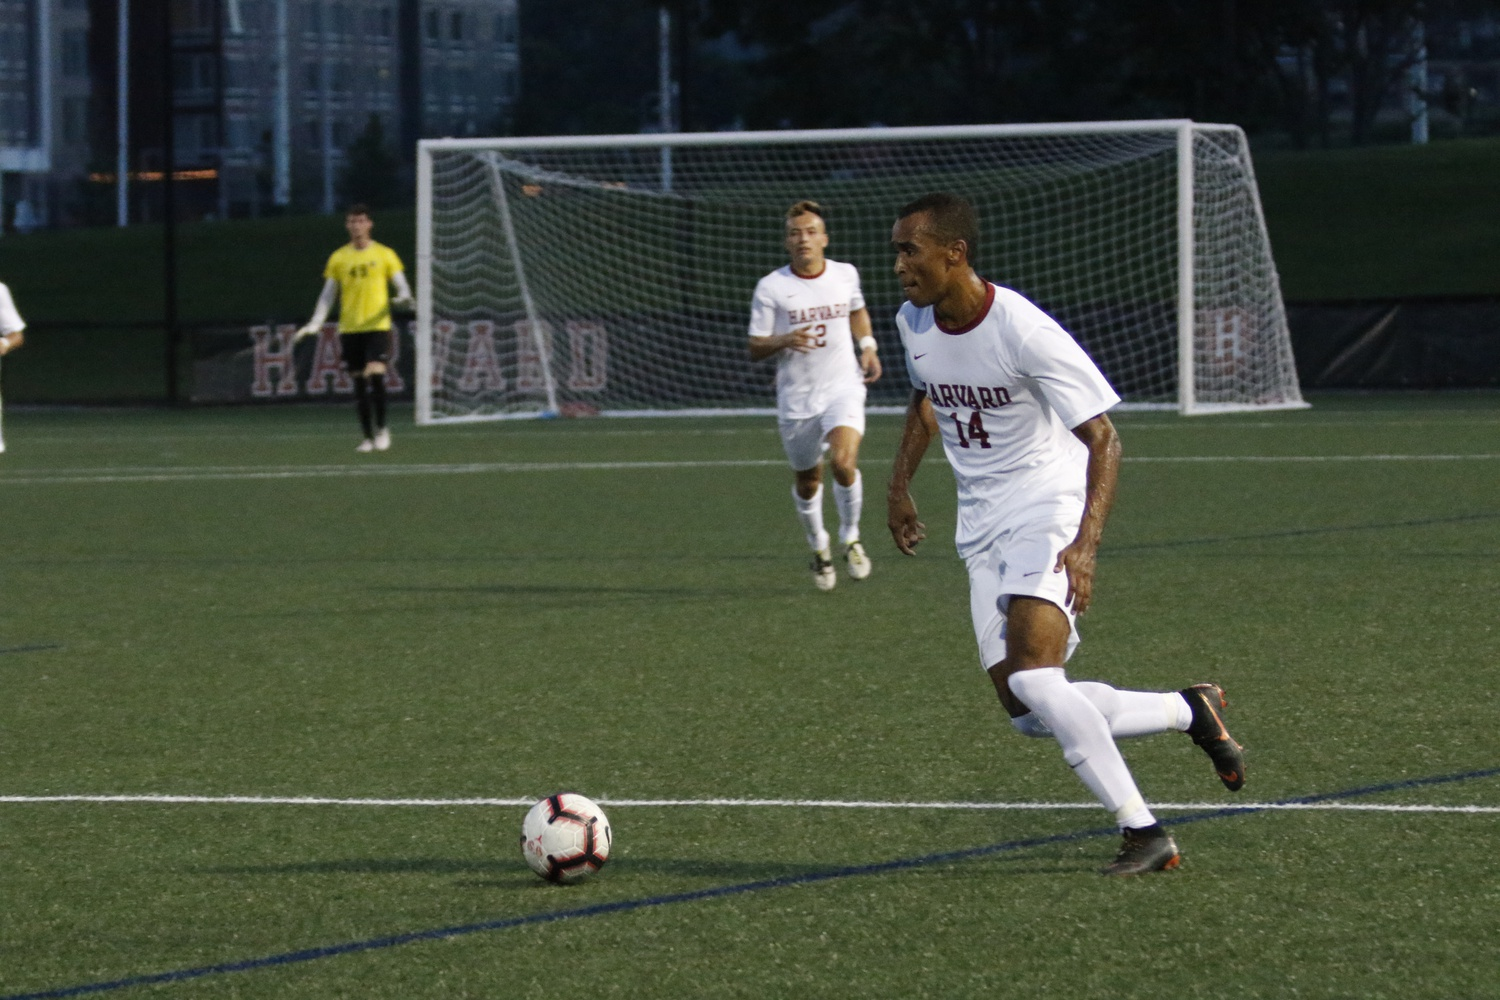 The Crimson found itself goalless all weekend through clashes against top teams Duke and UNC.